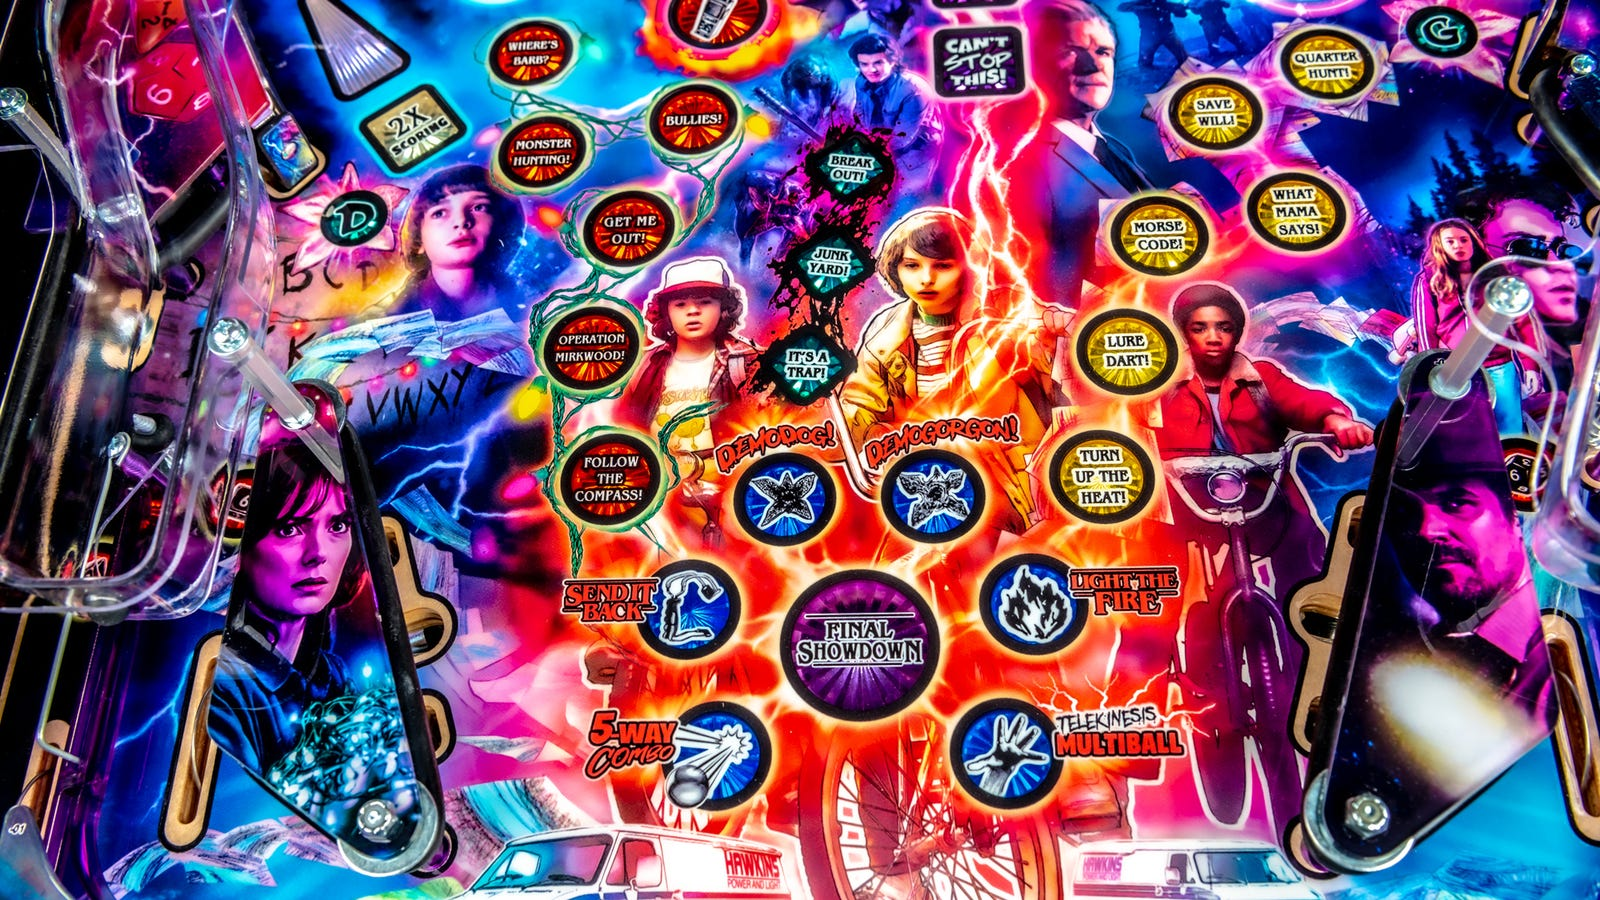 The table itself is completely saturated into Stranger Things graphics including all the characters from the series.